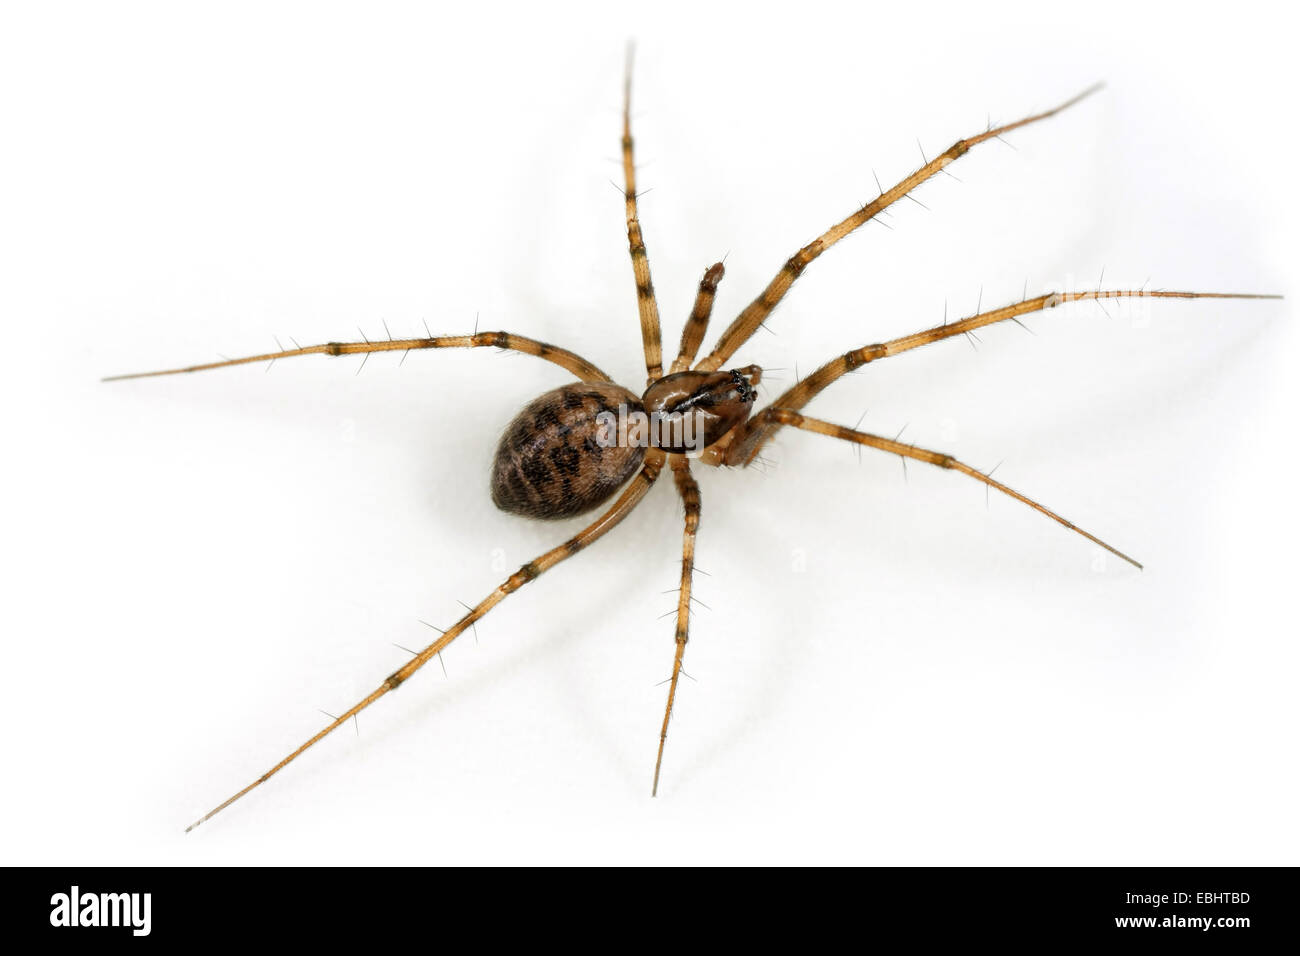 A Female Sheetweb weaver (Lepthyphantes nebulosus) on white background.  Sheetweb weavers are part of the family - Stock Image